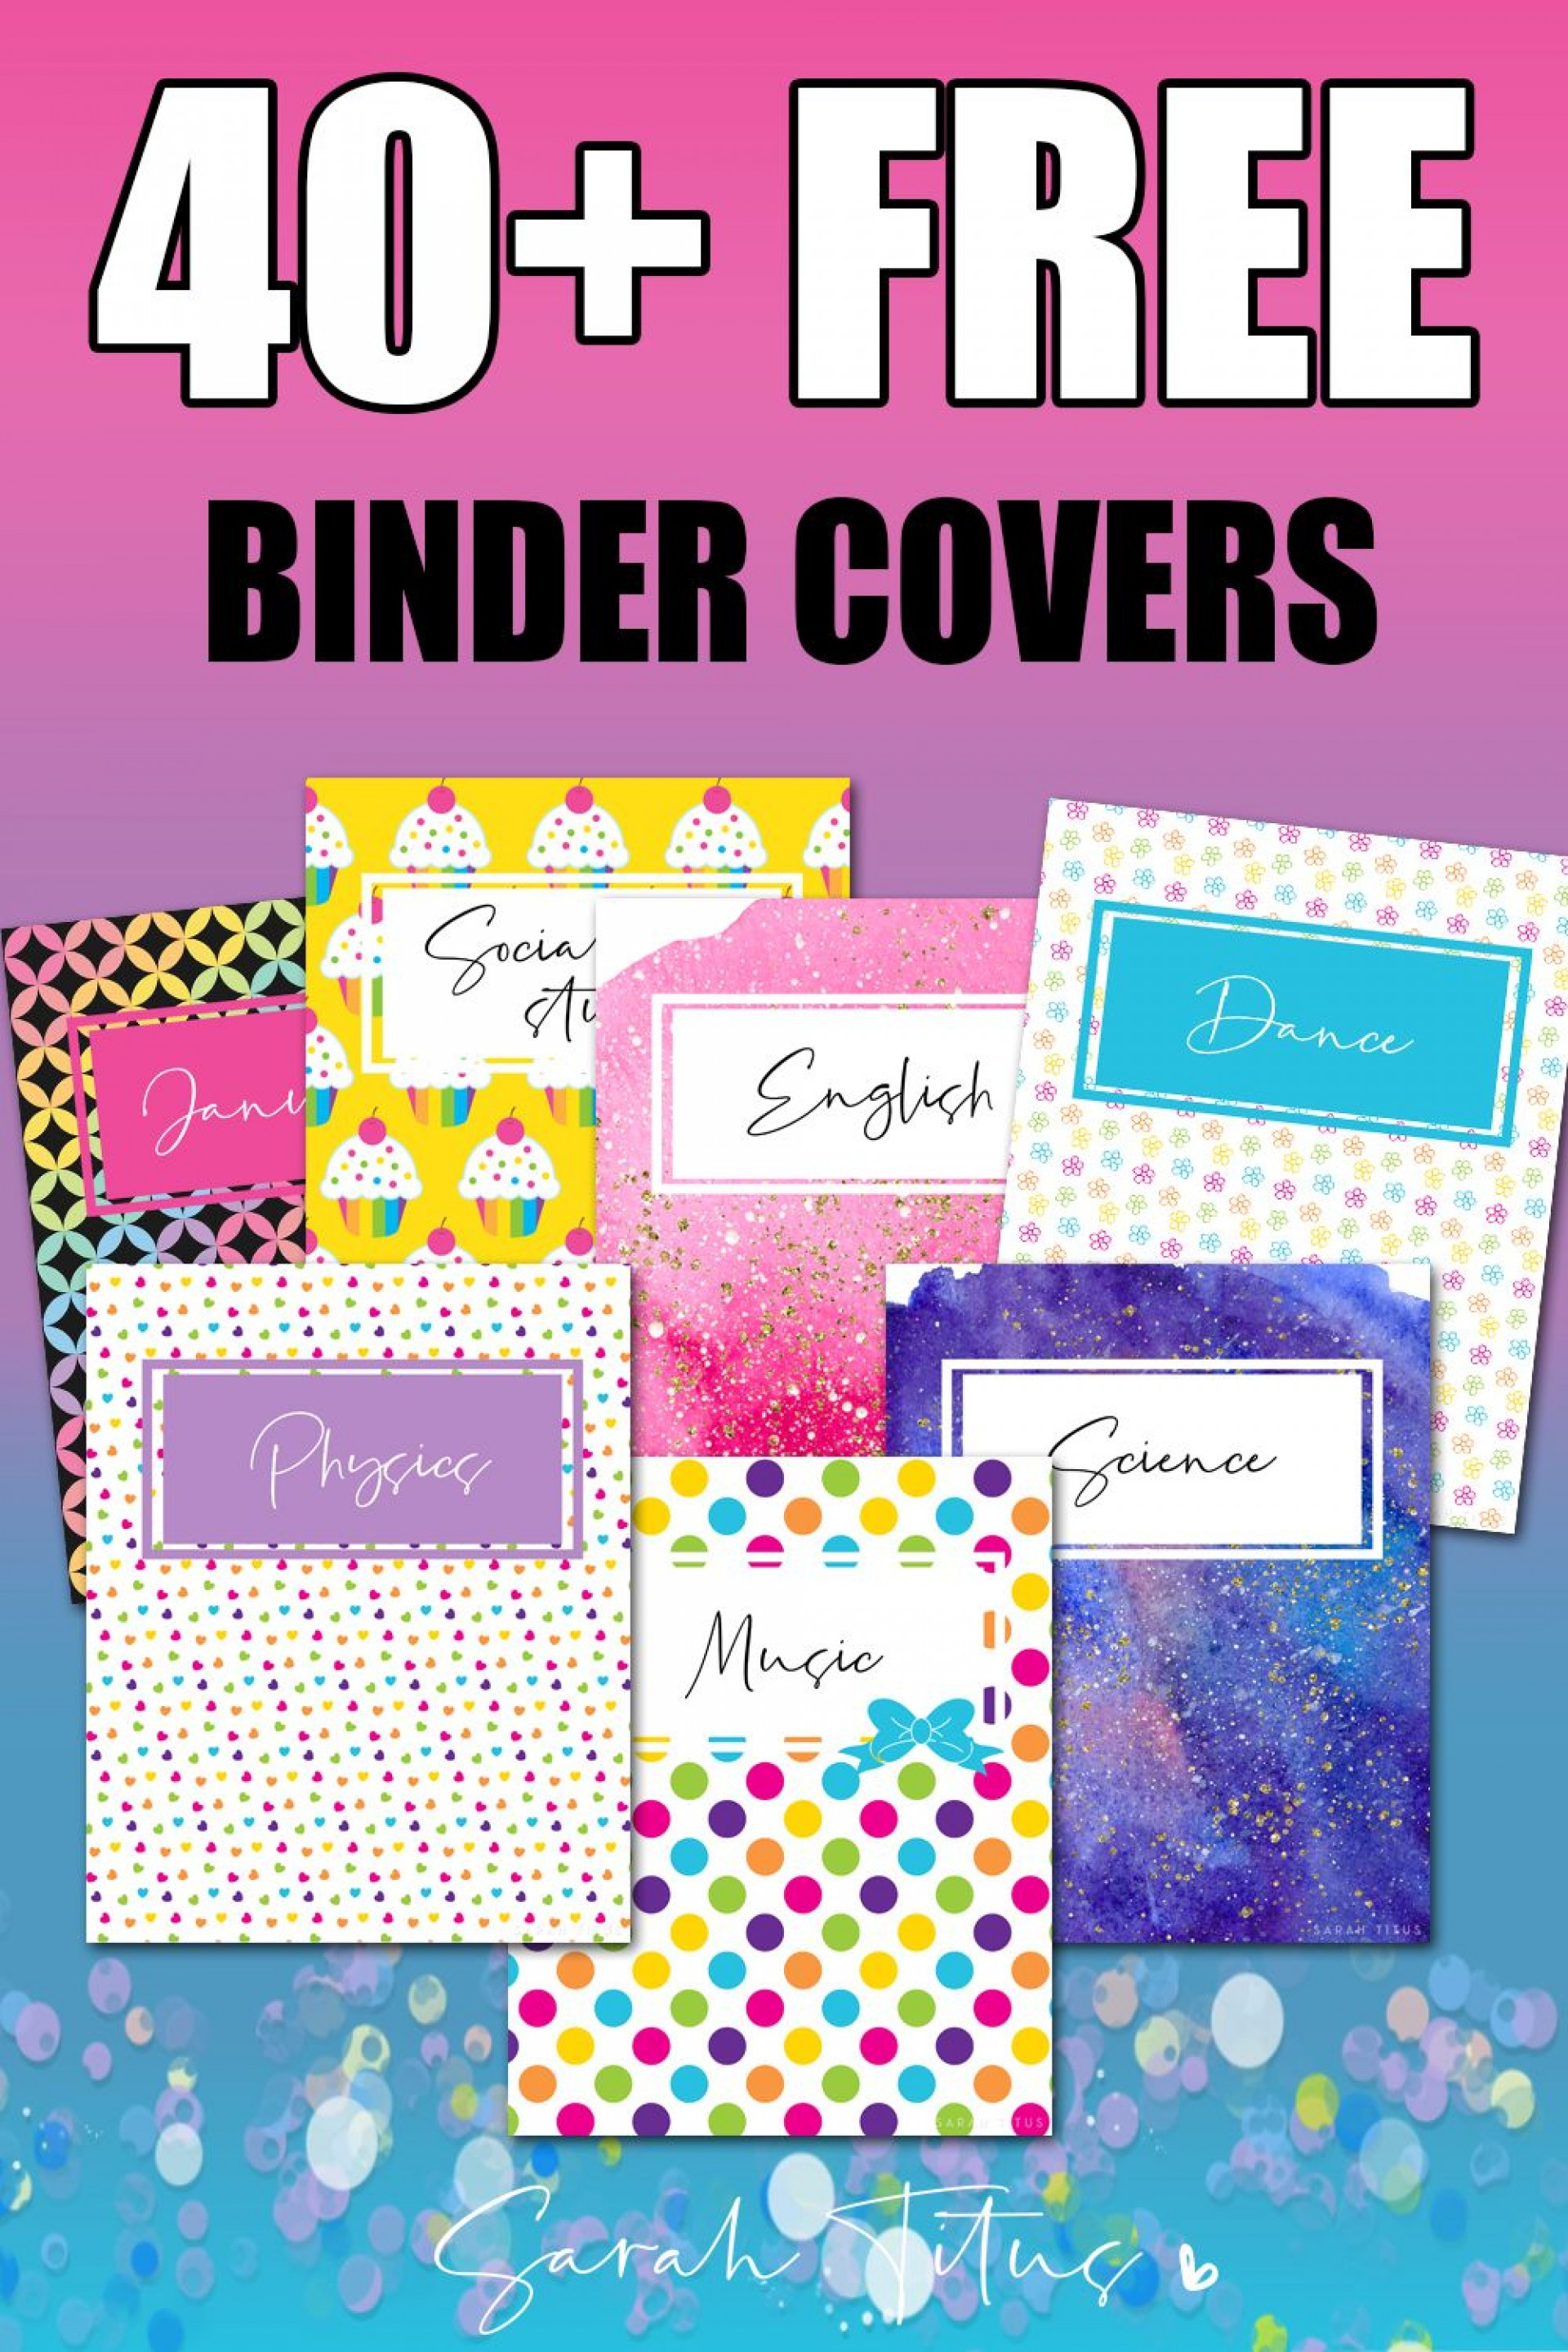 001 Amazing Cute Binder Cover Template Free Printable Design 1920